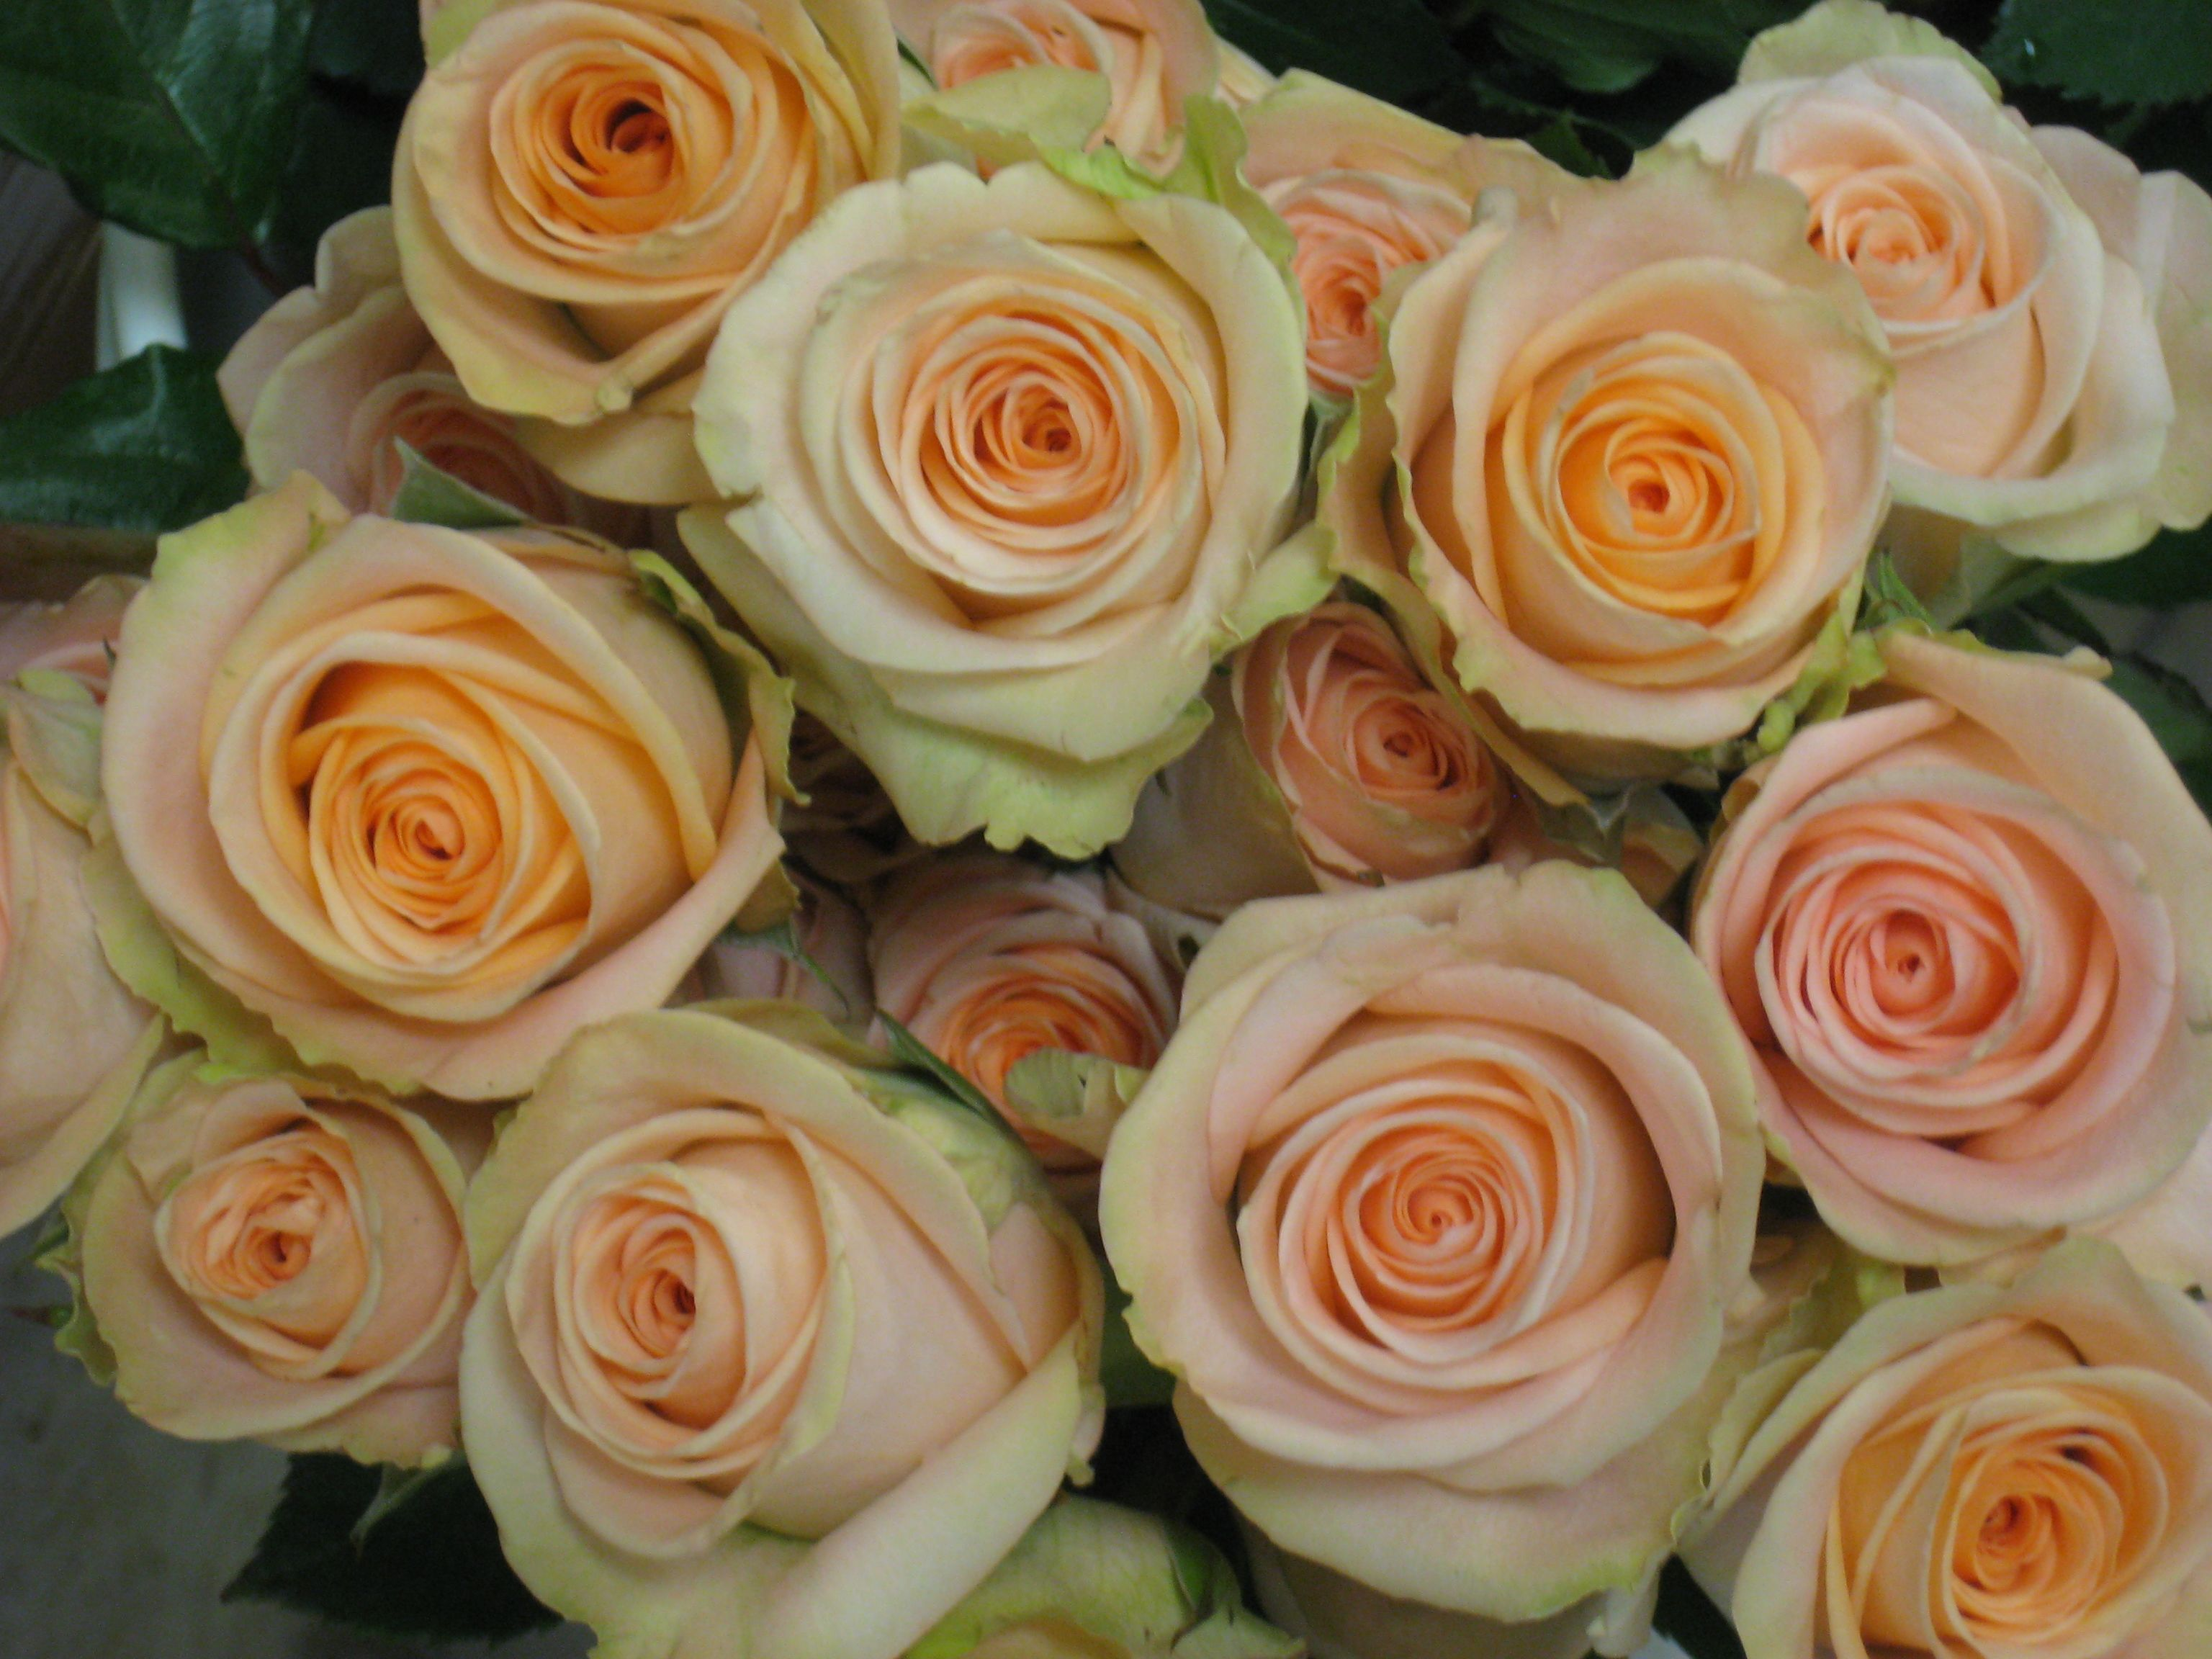 Flowers by shirley garden rose bouquets -  Tiffany Rose Love The Variety Of Shades Within The Roses